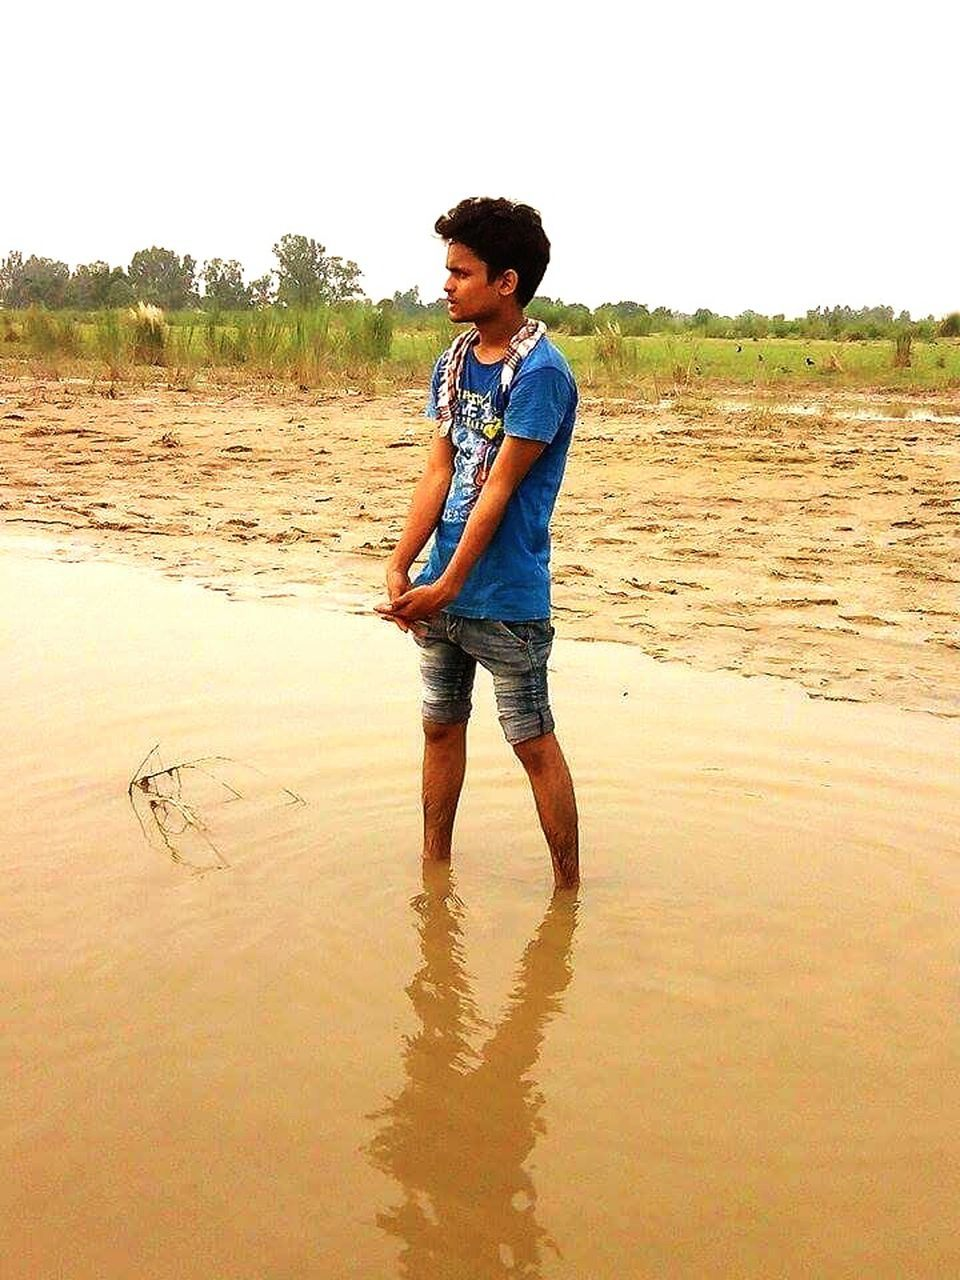 full length, casual clothing, one person, young adult, real people, standing, young women, lifestyles, young men, leisure activity, front view, happiness, water, outdoors, sand, day, nature, smiling, ankle deep in water, tree, sky, people